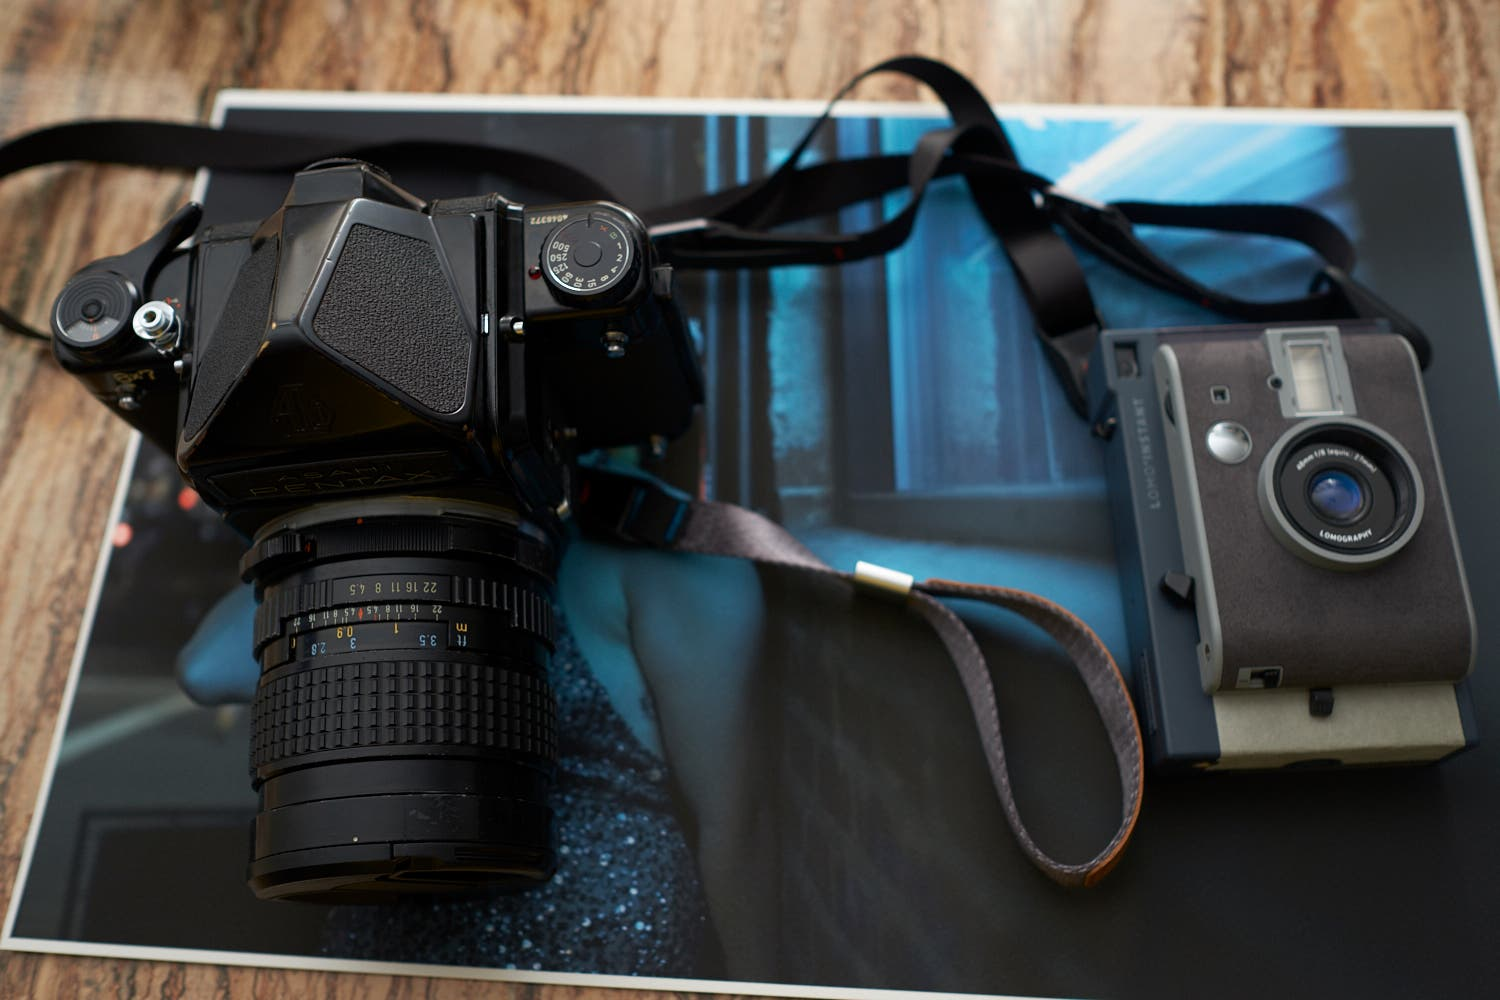 Review: Peak Design Leash and Cuff 2.0 Camera Straps